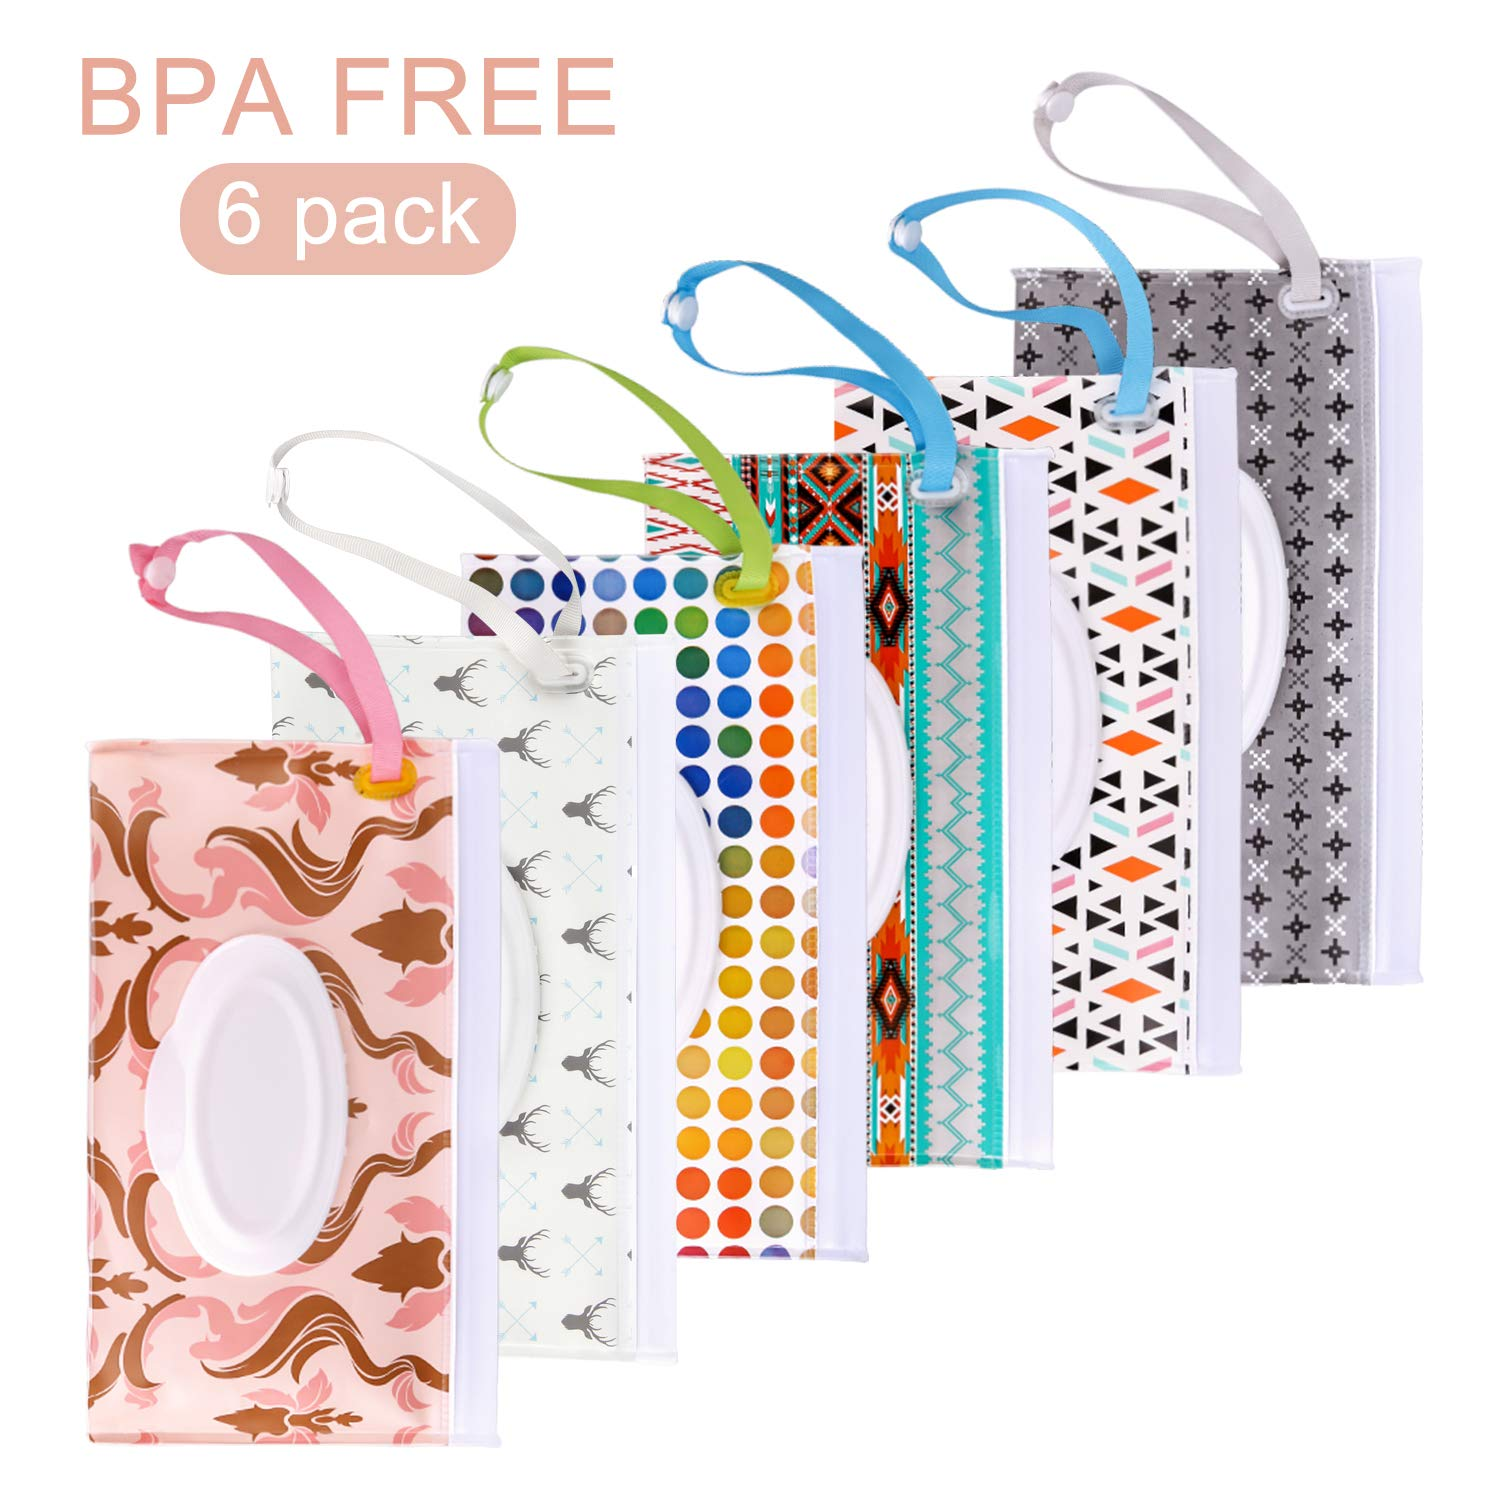 Blisstime Wet Wipe Pouch, 6 Pack Baby Wipe Holder Travel Cases, Reusable Eco-Friendly Pouches to Keep Wipes